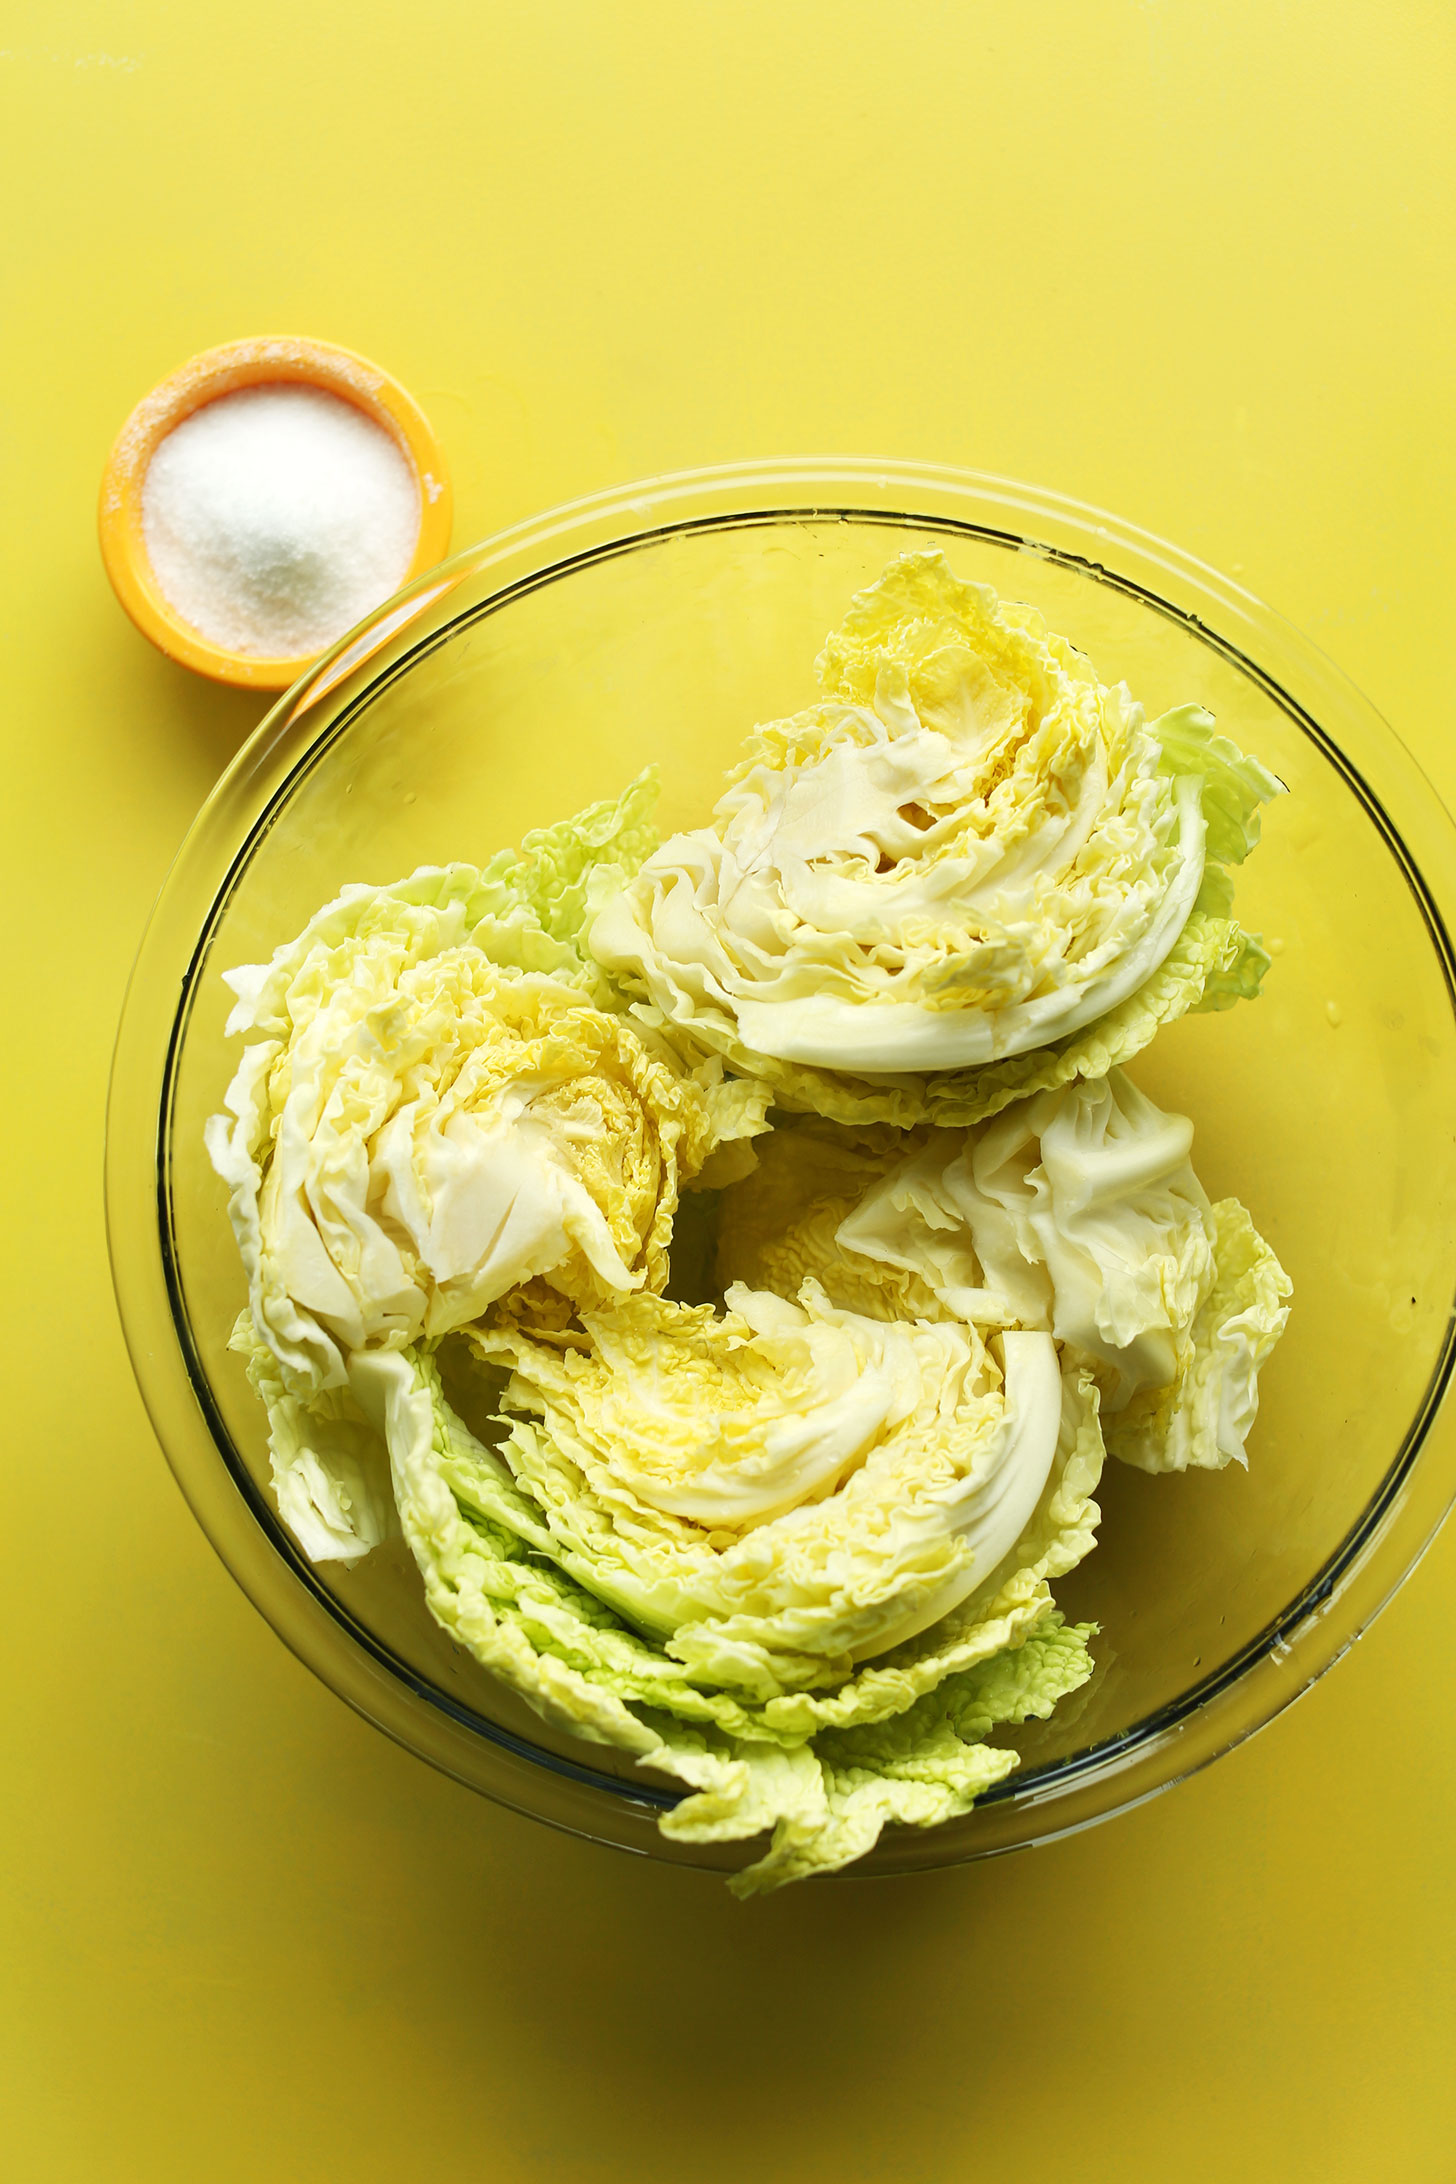 Bowls of cabbage and salt for making delicious our easy vegan kimchi recipe